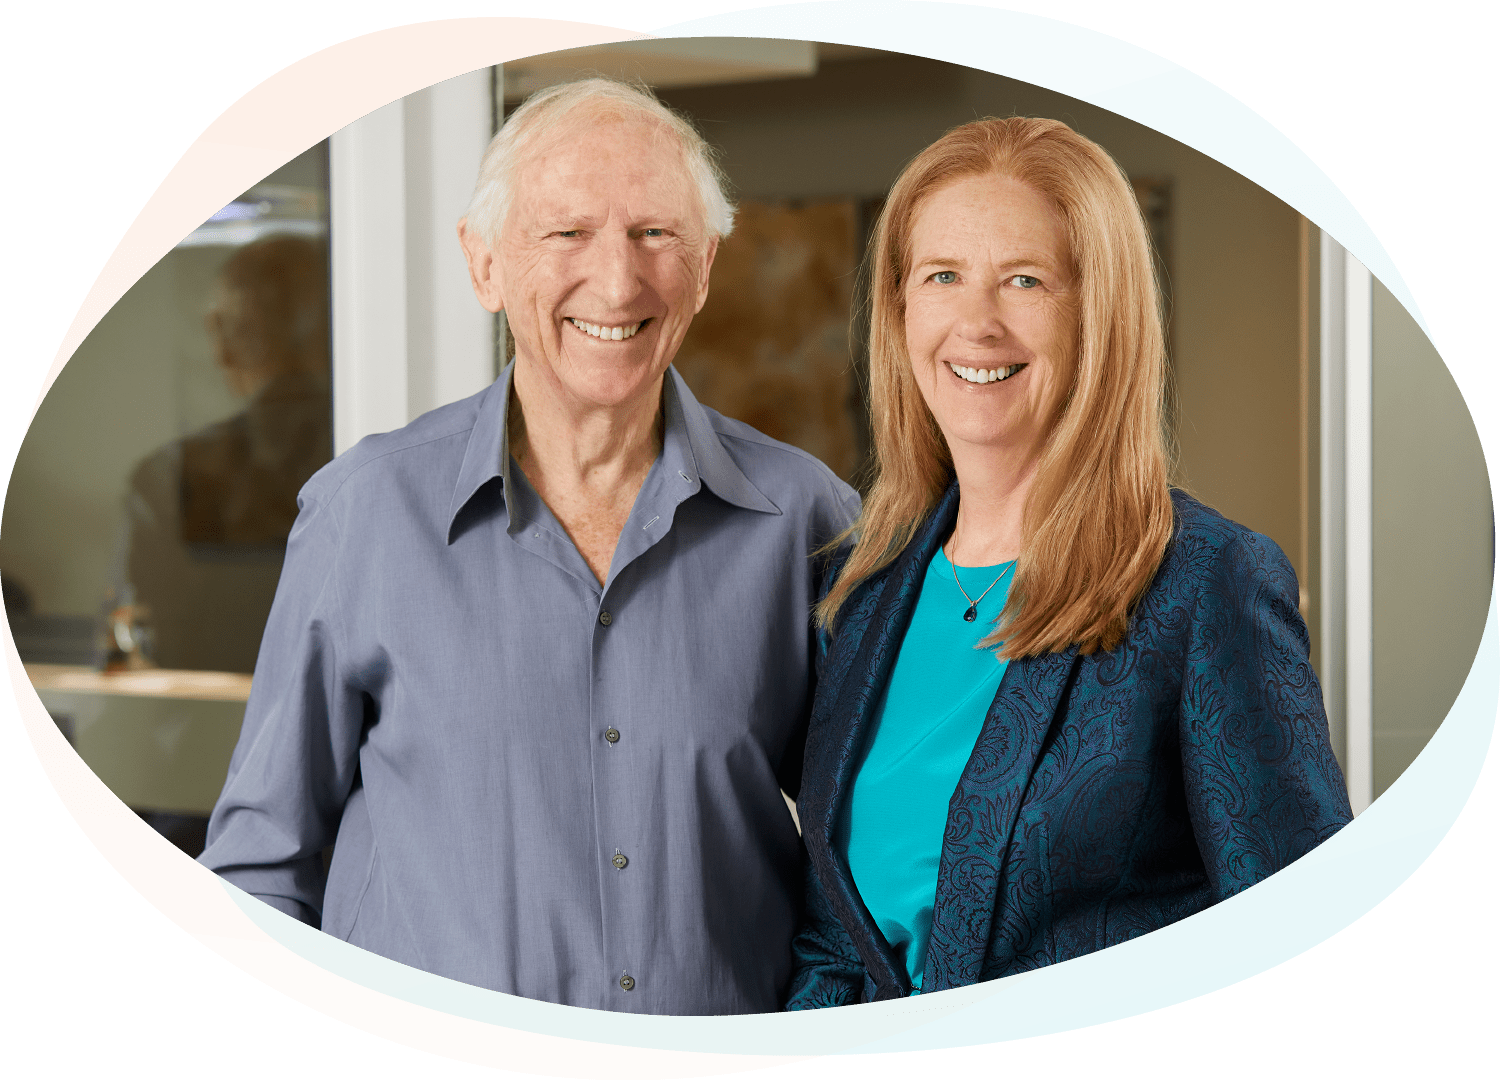 Dr Bob Murray and Dr Alicia Fortinberry